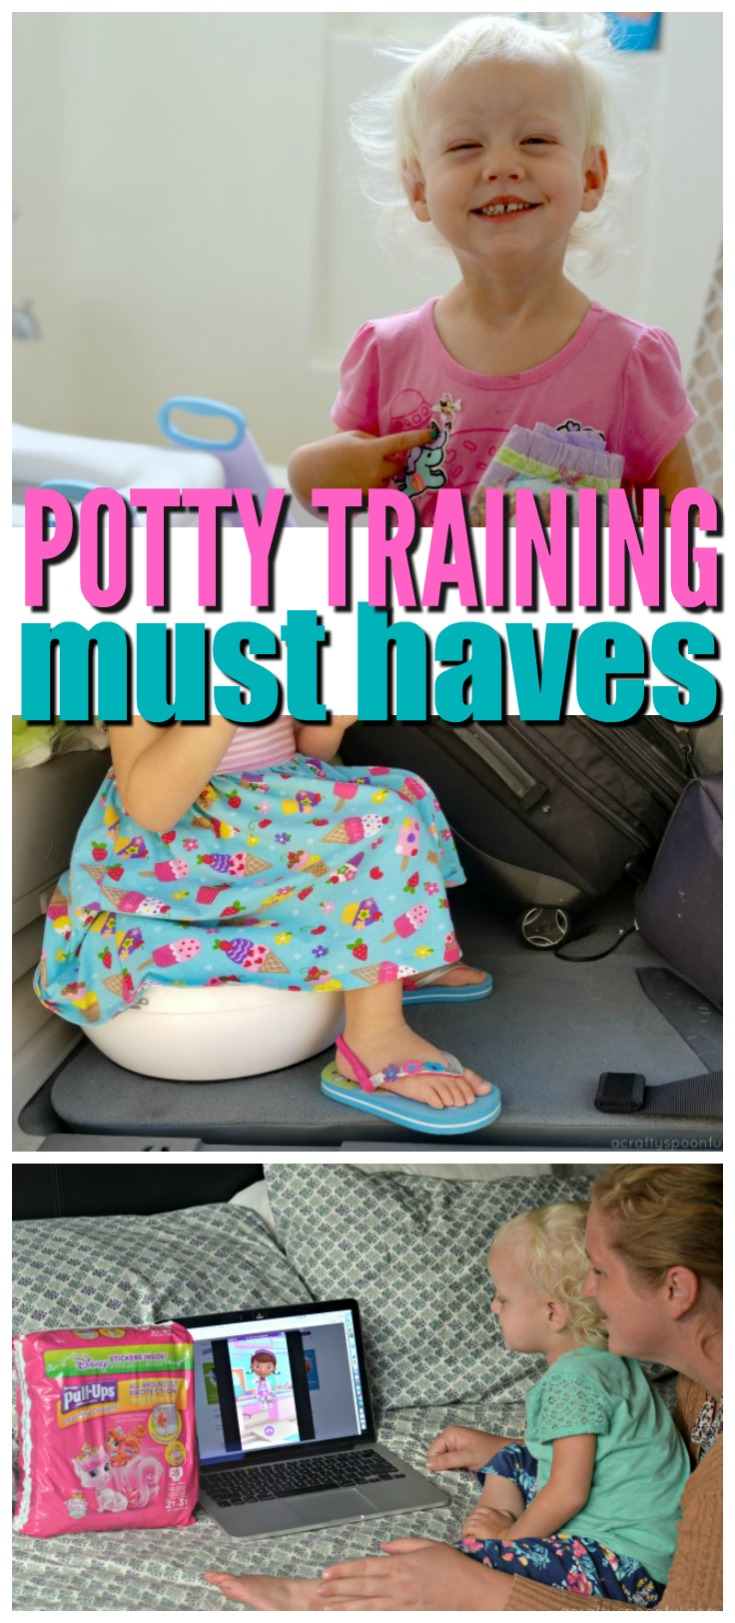 We're sharing the ultimate potty training kit including 5 potty training must haves to make potty training easier! AD